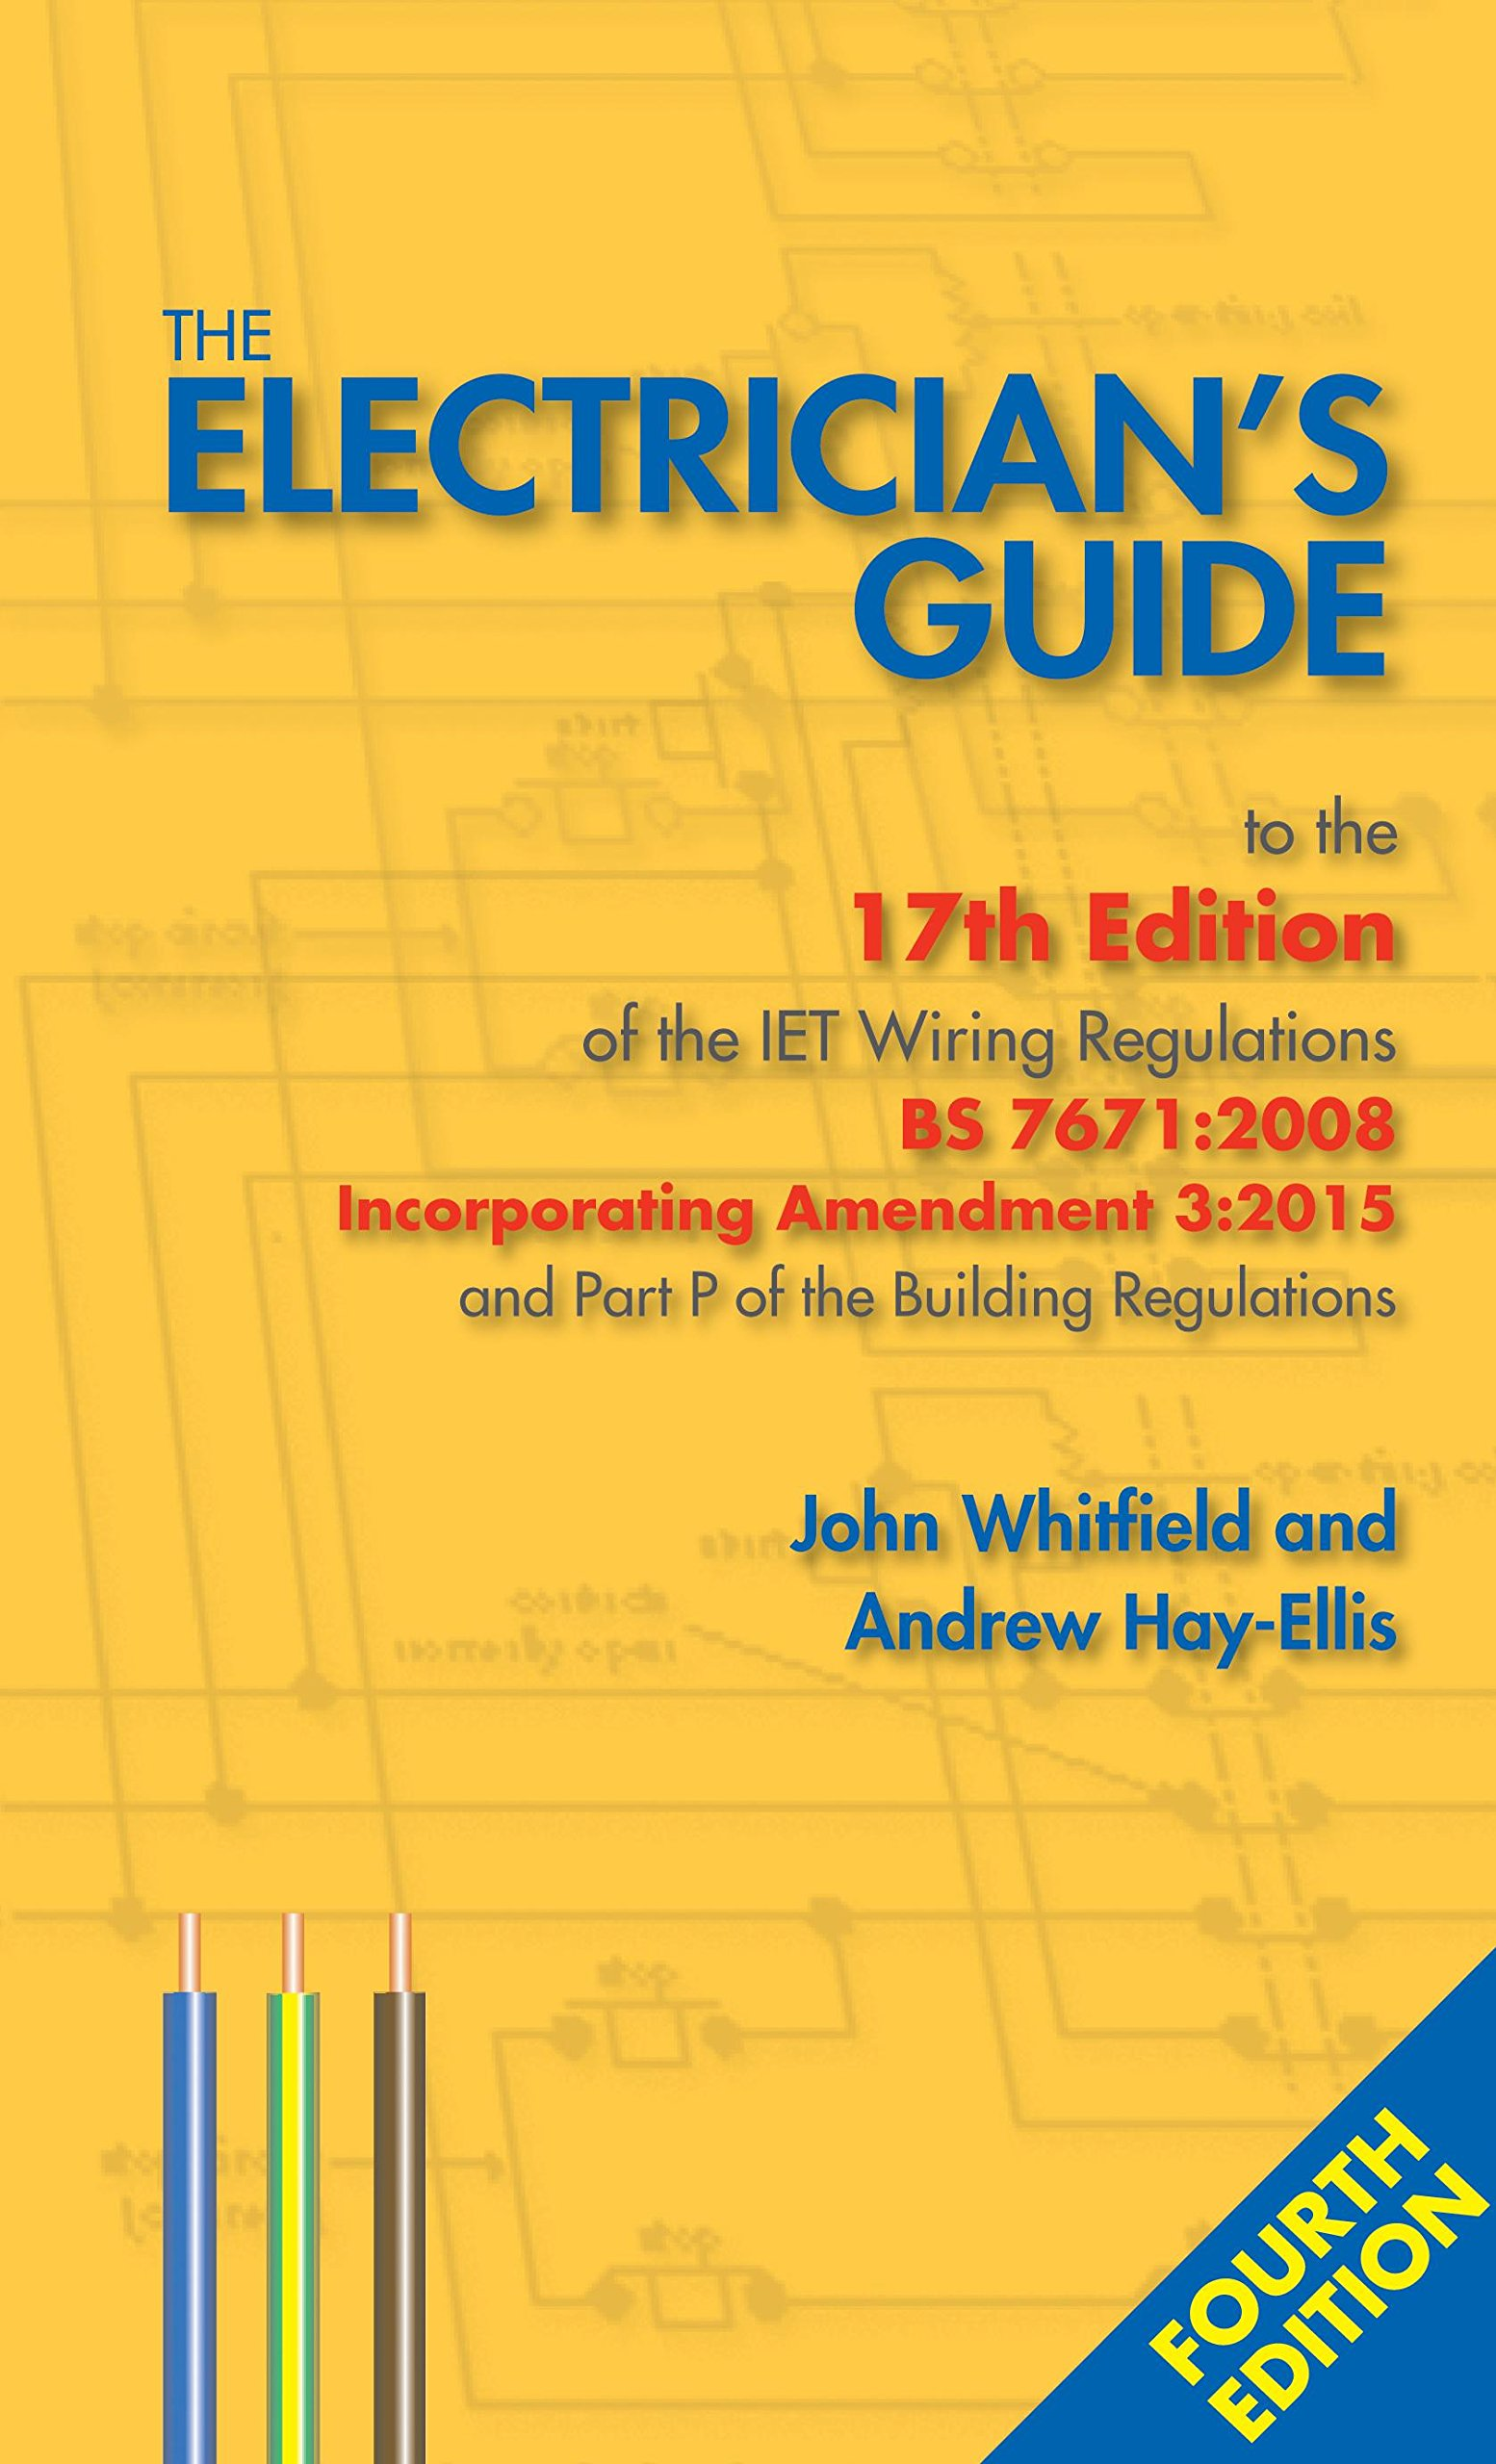 The Electricians Guide To 17th Edition Of Iet Wiring P B Regulations Bs 7671 2008 Incorporating Amendment 3 2015 And Part Building